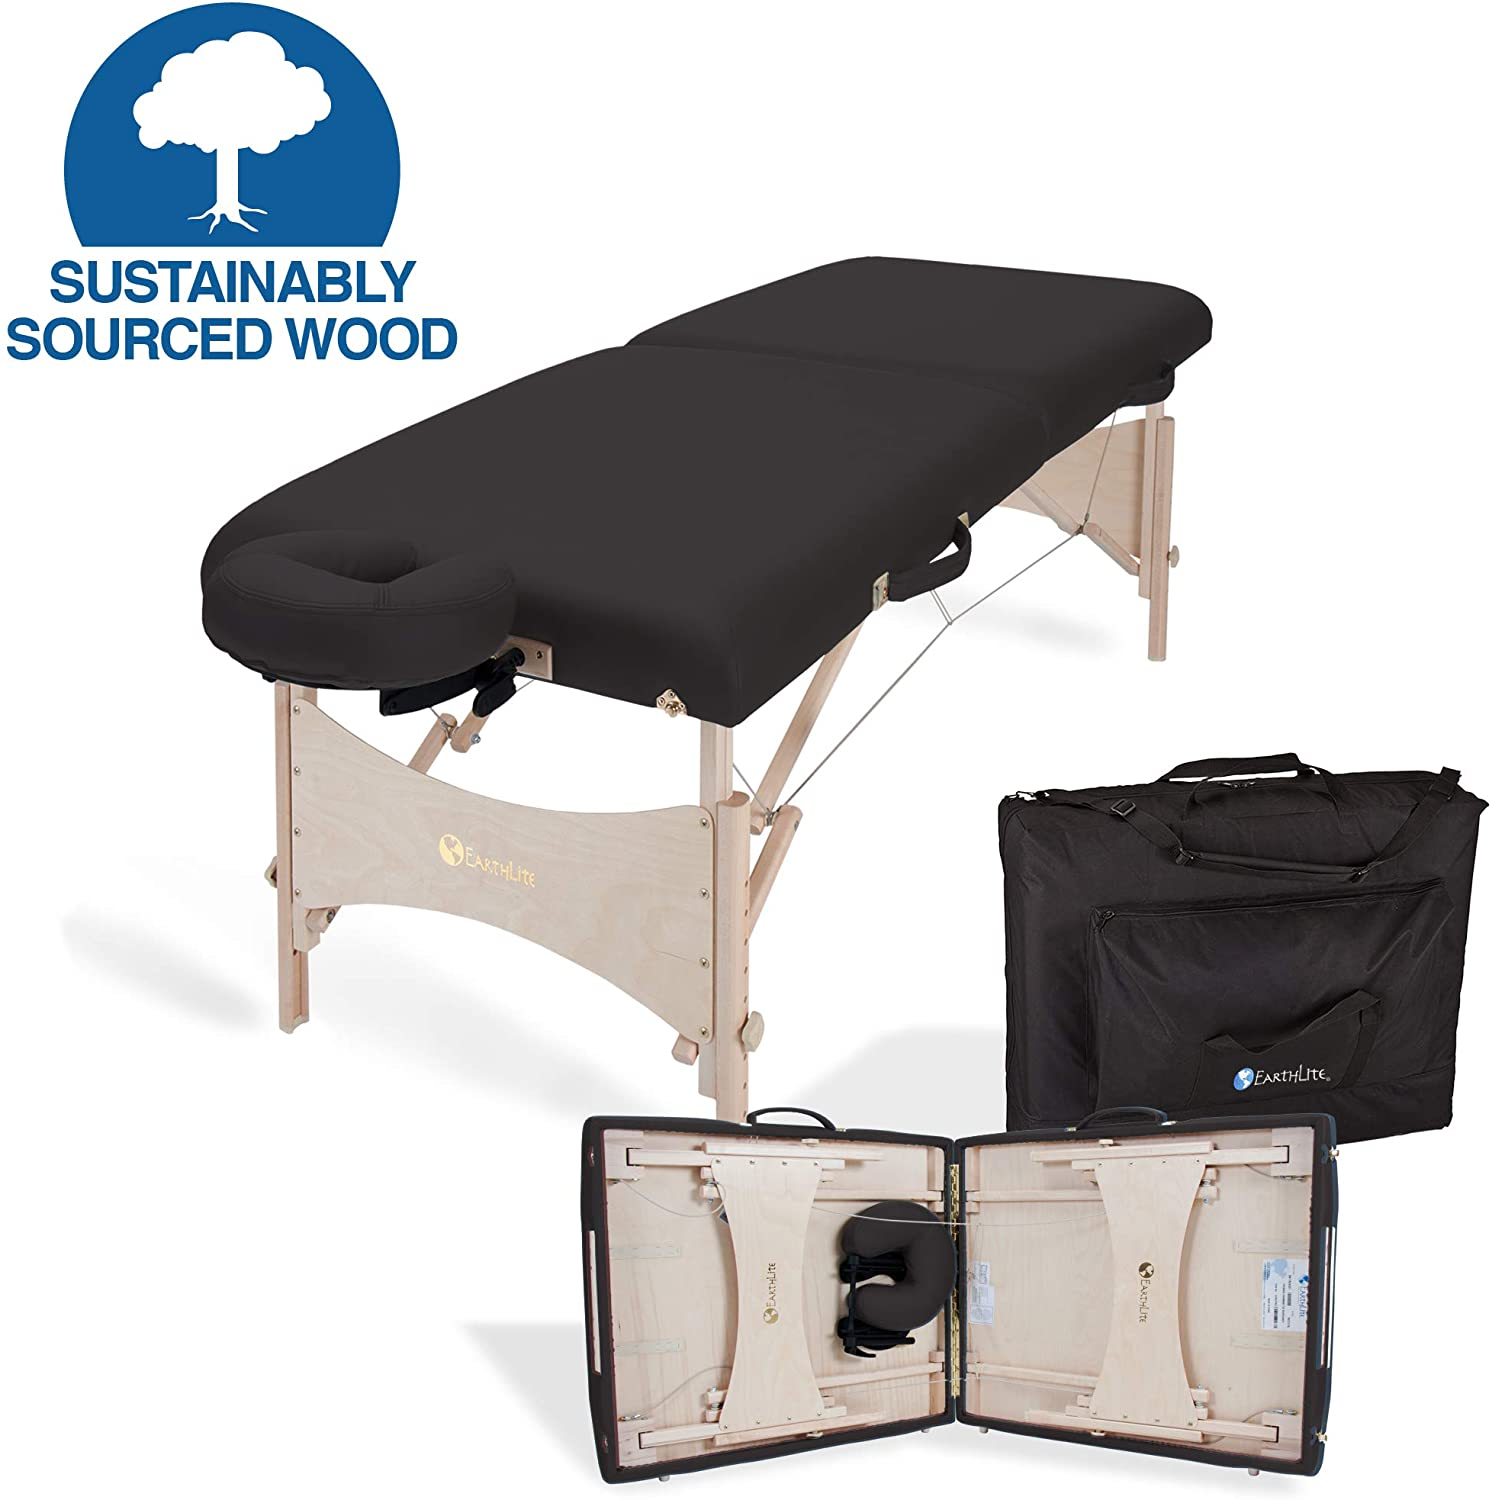 EARTHLITE Portable Massage Table HARMONY DX – Foldable  Physiotherapy/Treatment/Stretching Table, Eco-Friendly Design, Hard Maple,  Superior Comfort